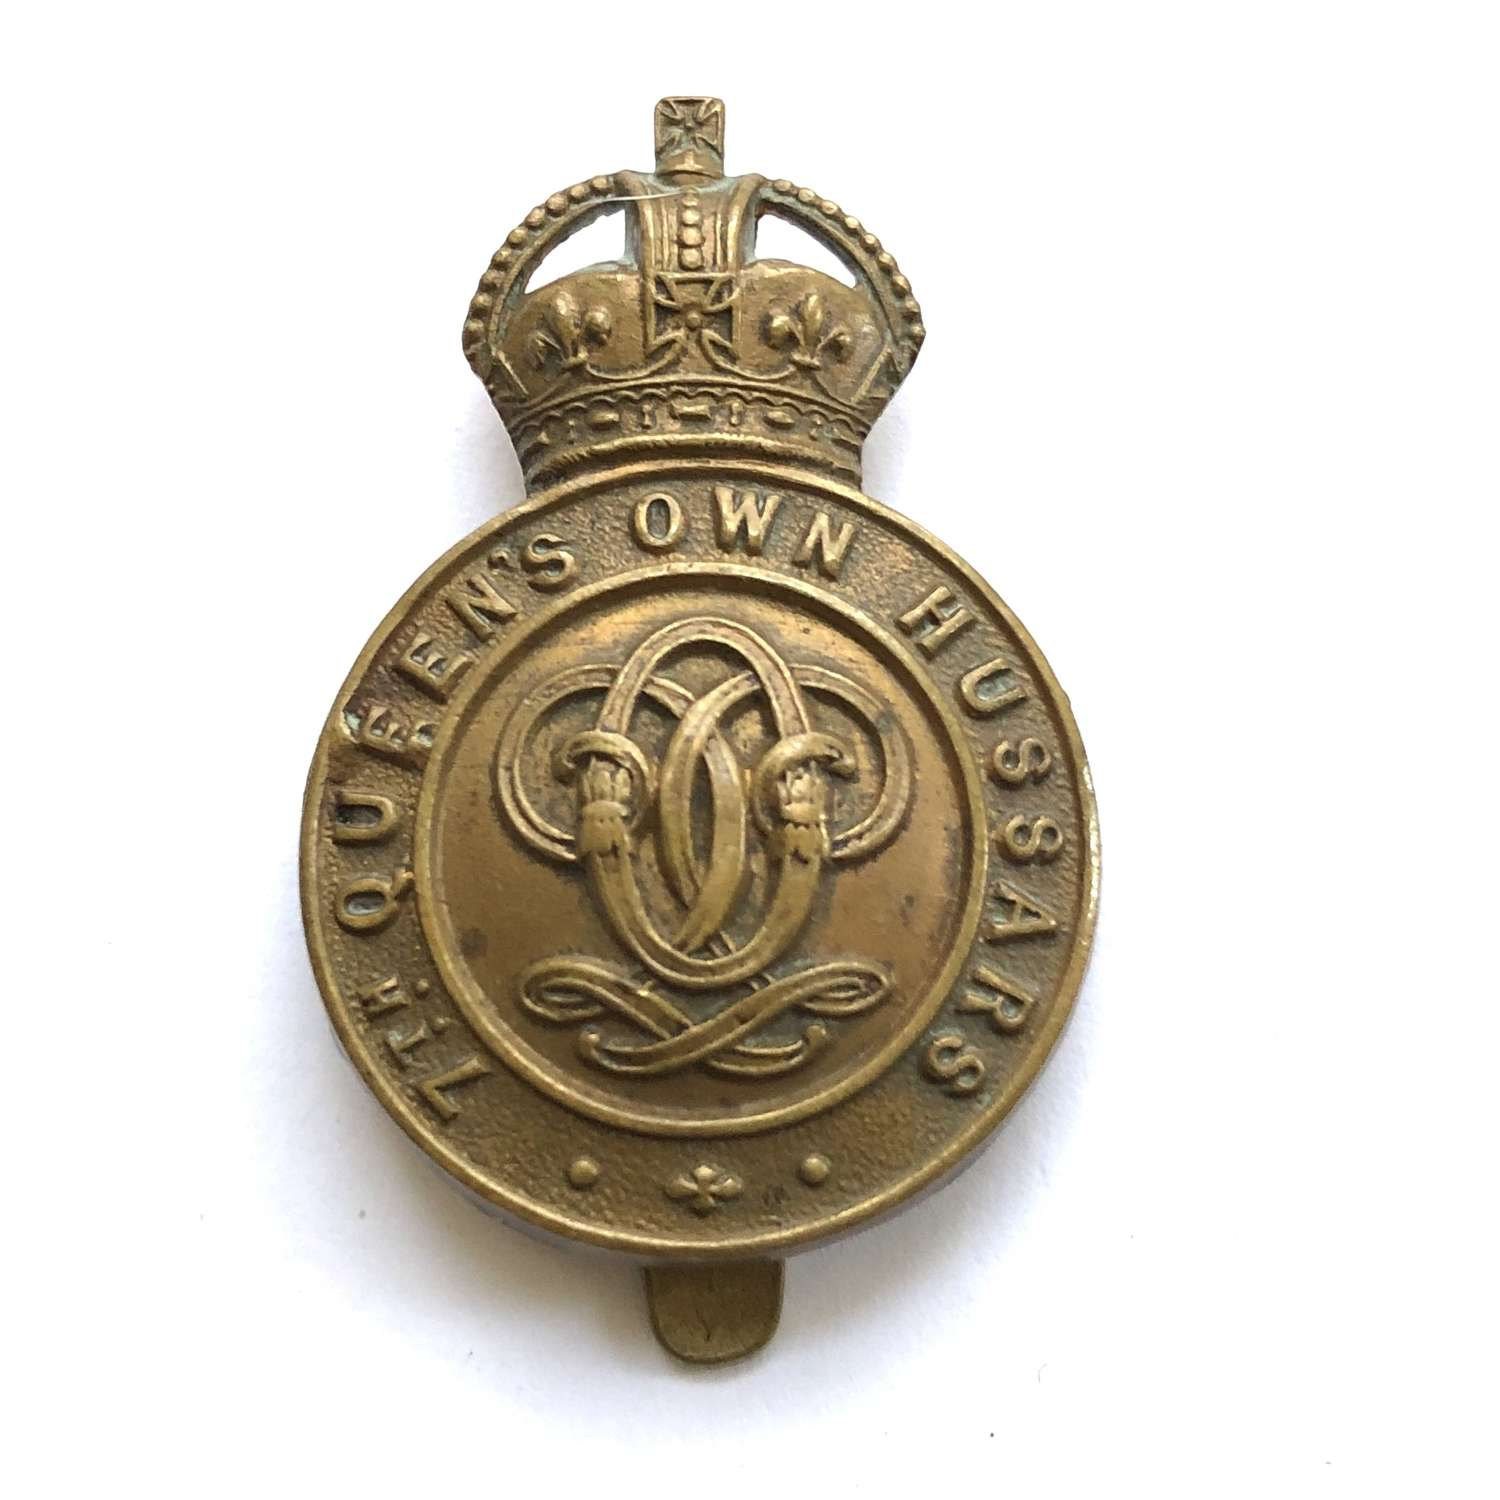 7th Queen's Own Hussars WW1 1916 all brass economy cap badge